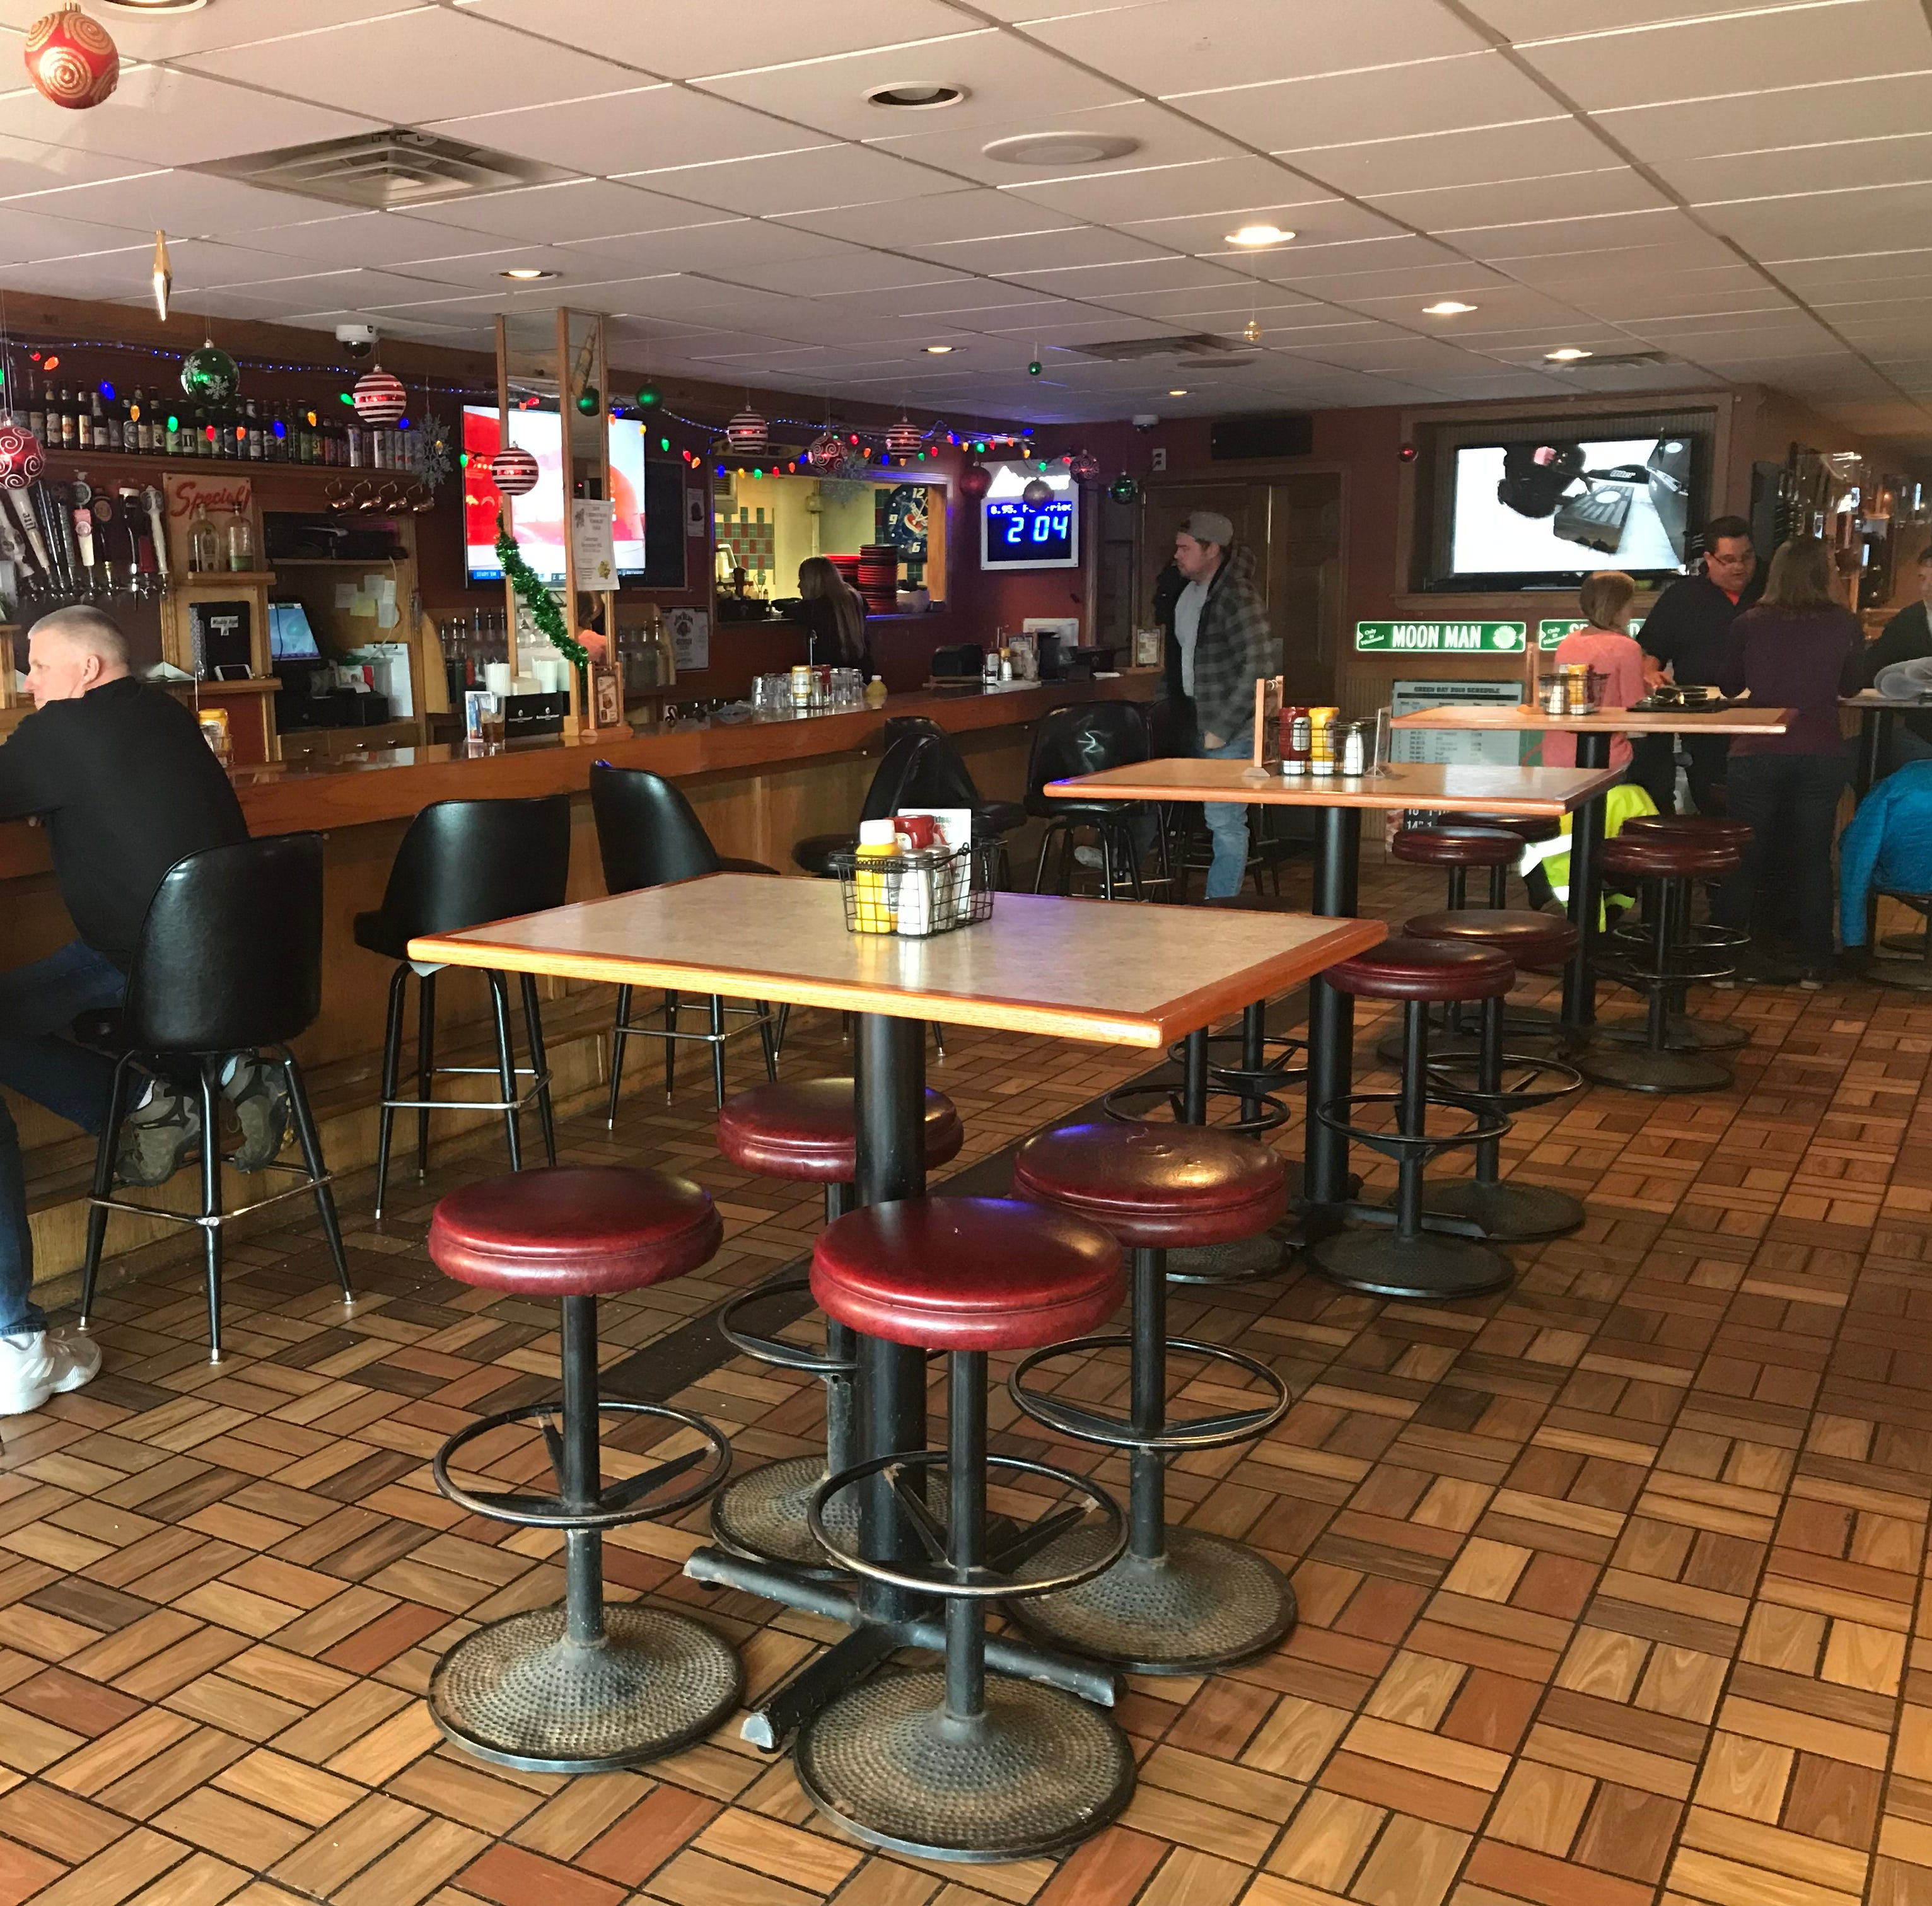 Oconomowoc's Cornerstone Sports Pub prides itself on being a cornerstone of the community